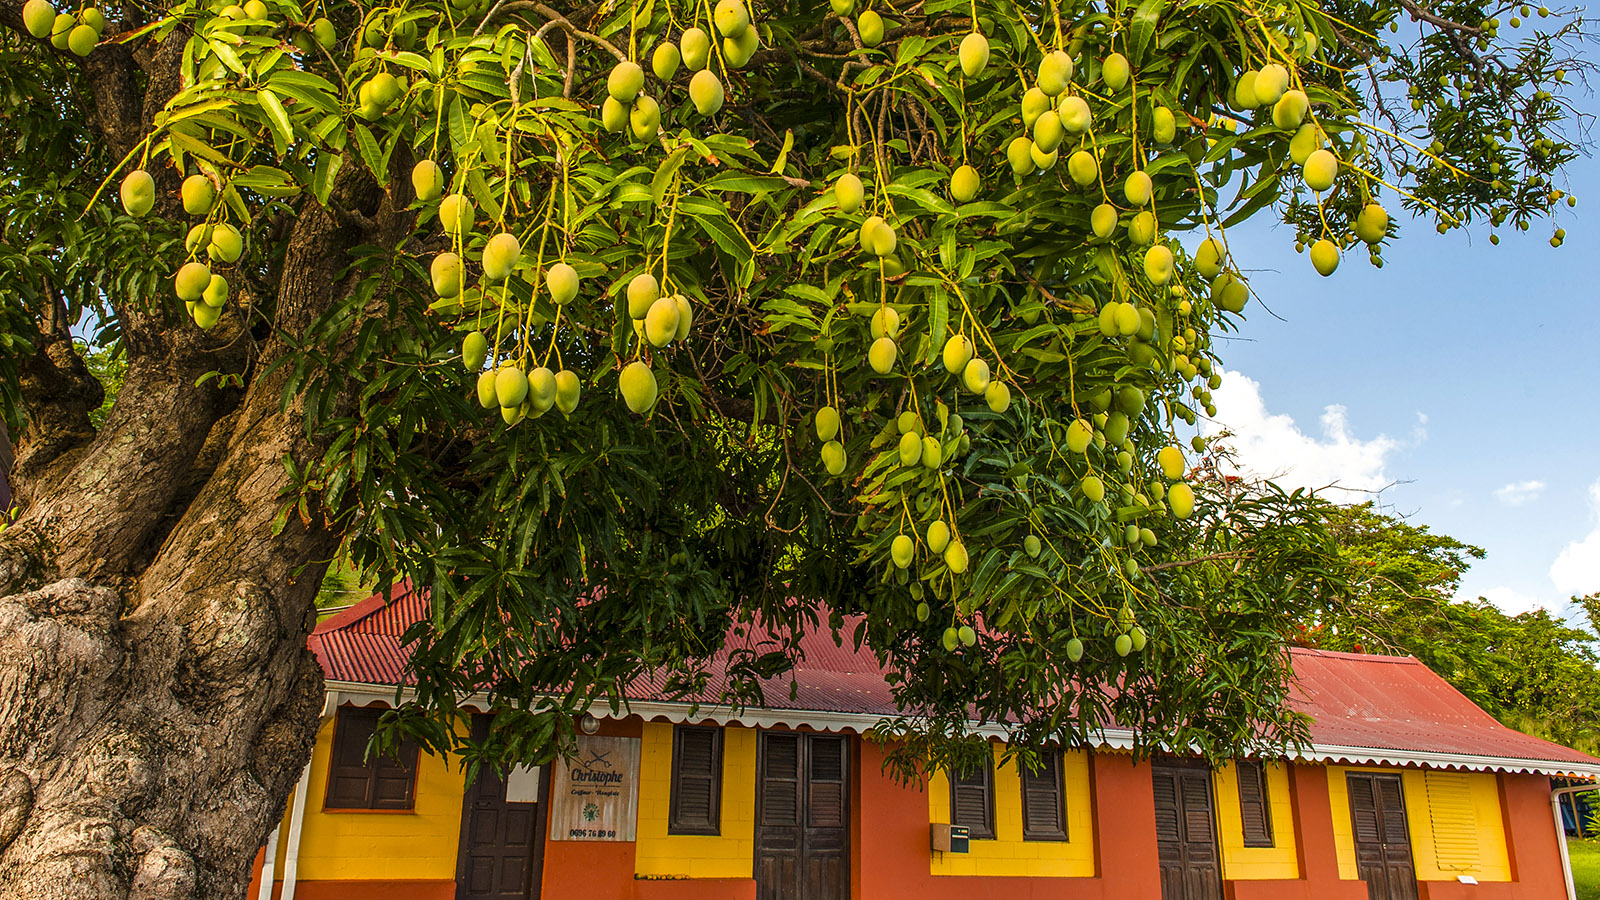 Martinique: Mangos in Tartane. Foto: Hilke Maunder